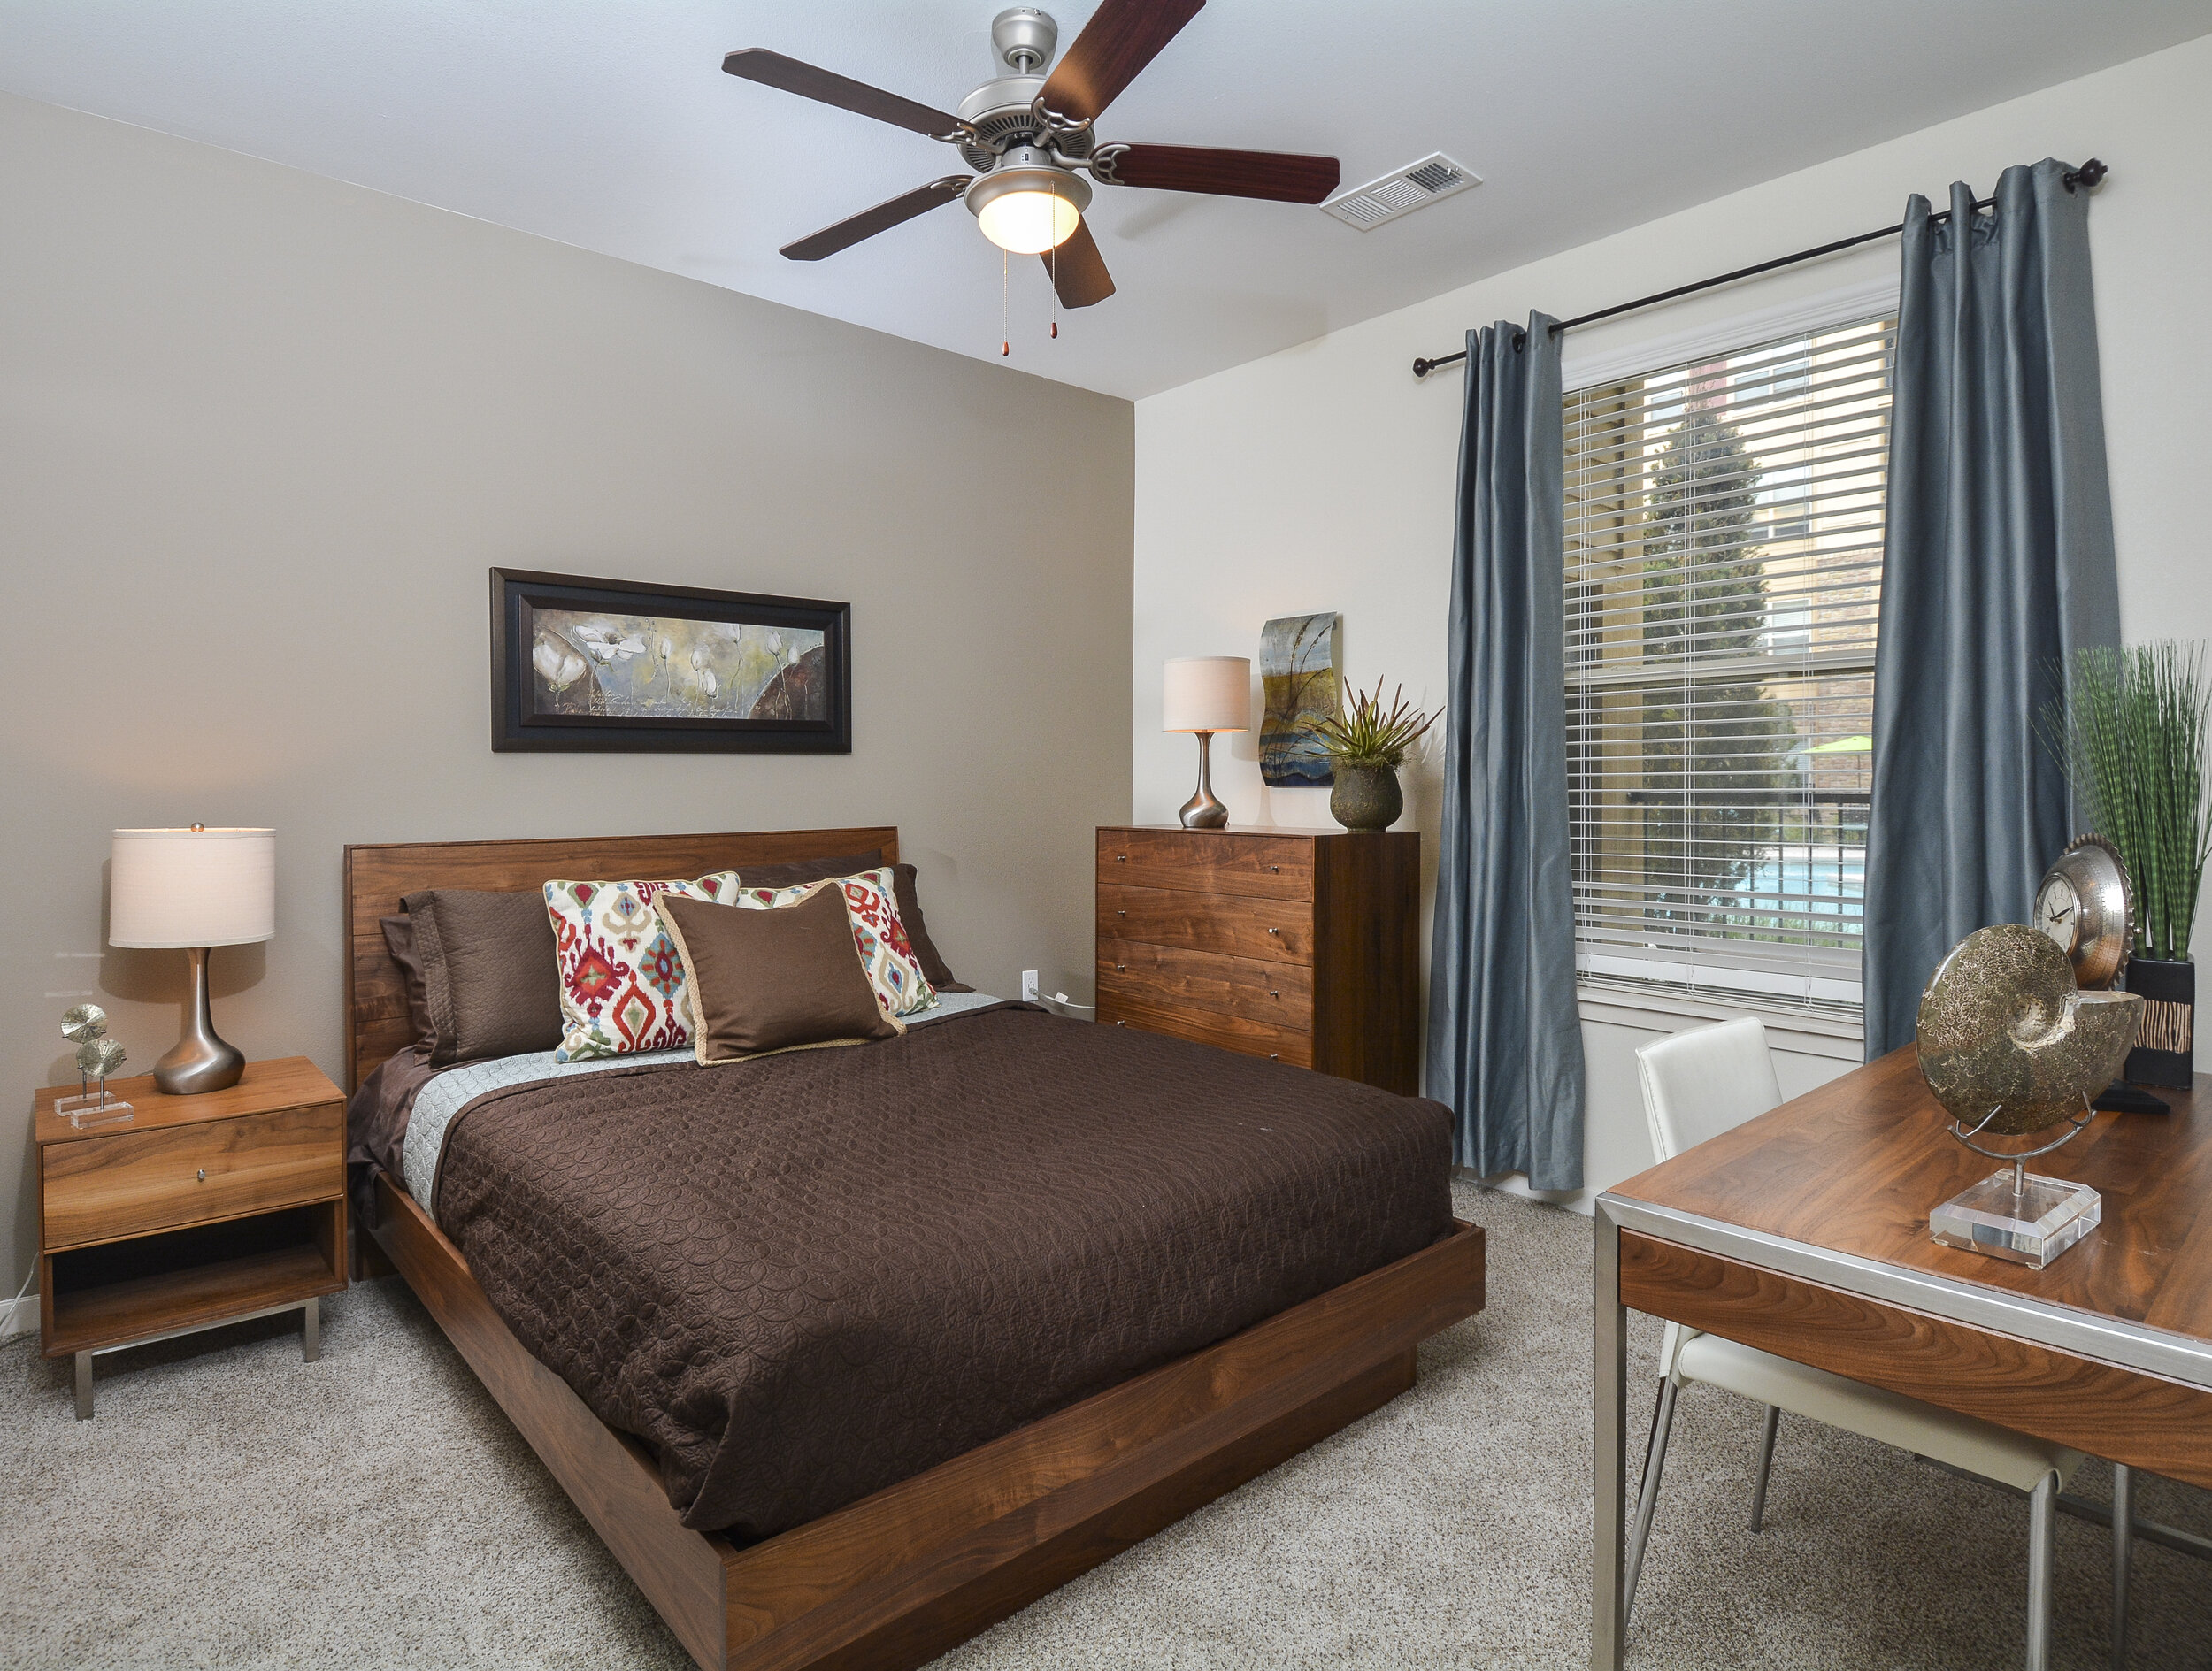 07-Naturally Lit _ Expansive Bedrooms.jpg